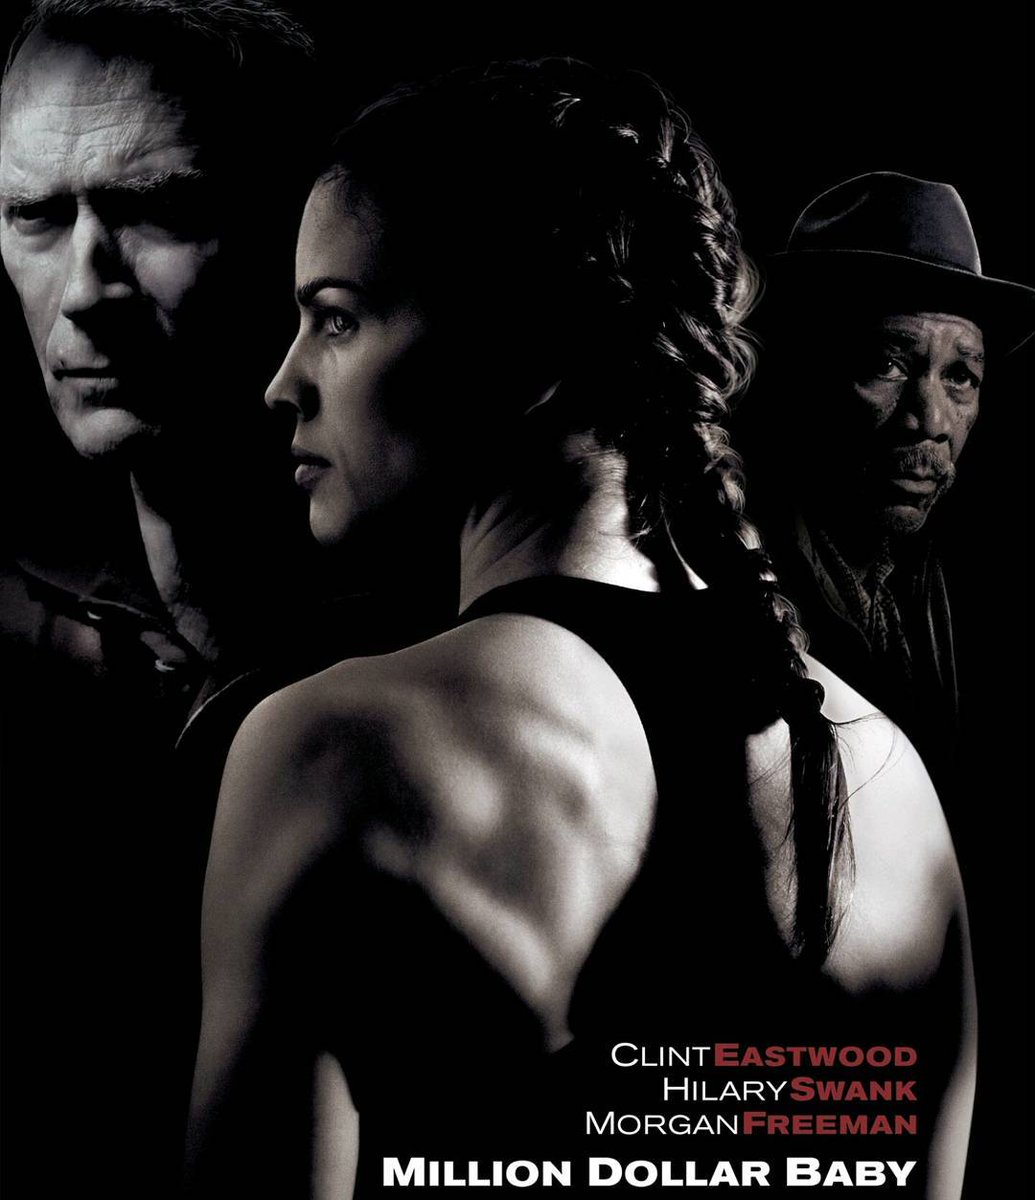 essays on million dollar baby The million dollar baby movie focuses around a young lady named maggie and a amateur boxing trainer the whole movie is based around the career of both characters, and the issue of euthanasia comes into play during the last part of the movie.